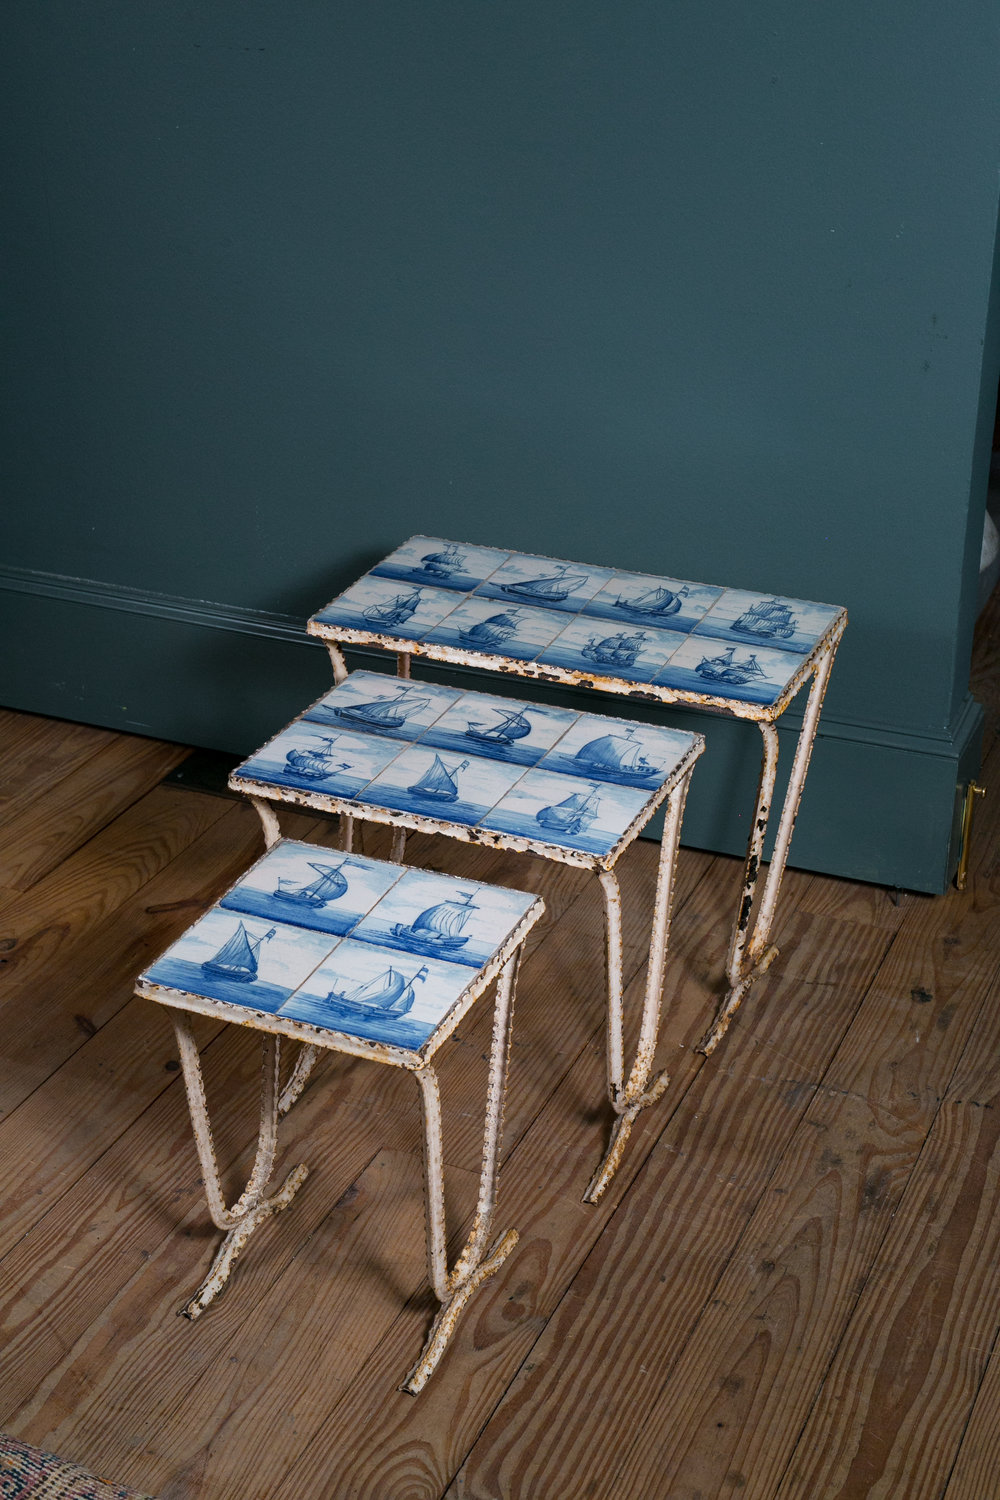 Vintage Delft Nesting Tables from Belgium